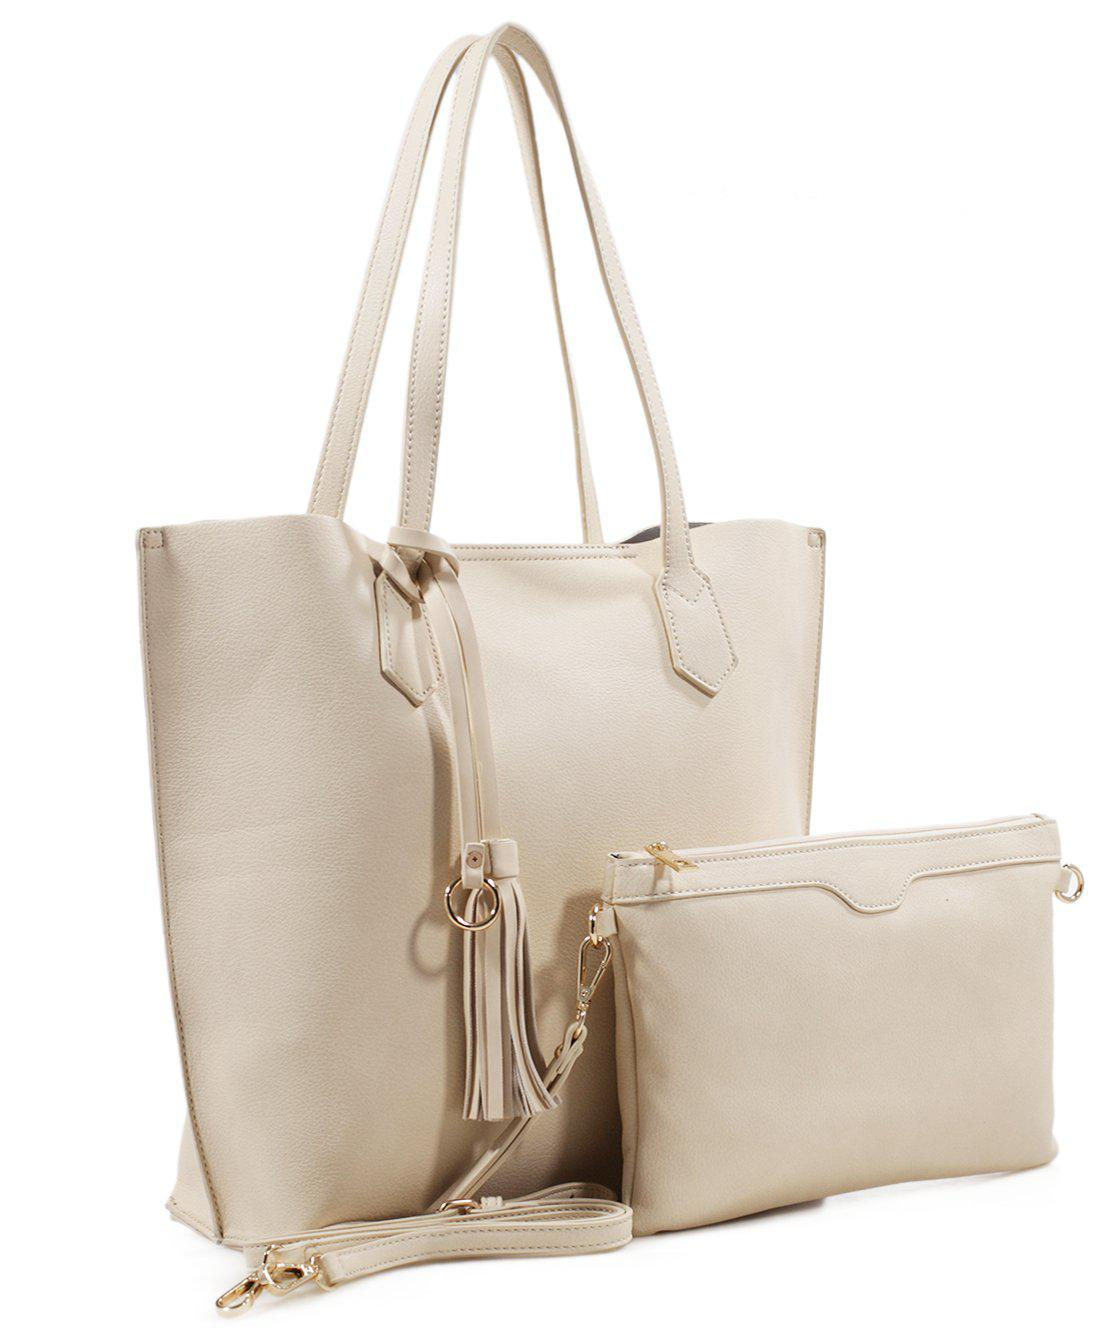 Sandy Beach Purse- CLEARANCE